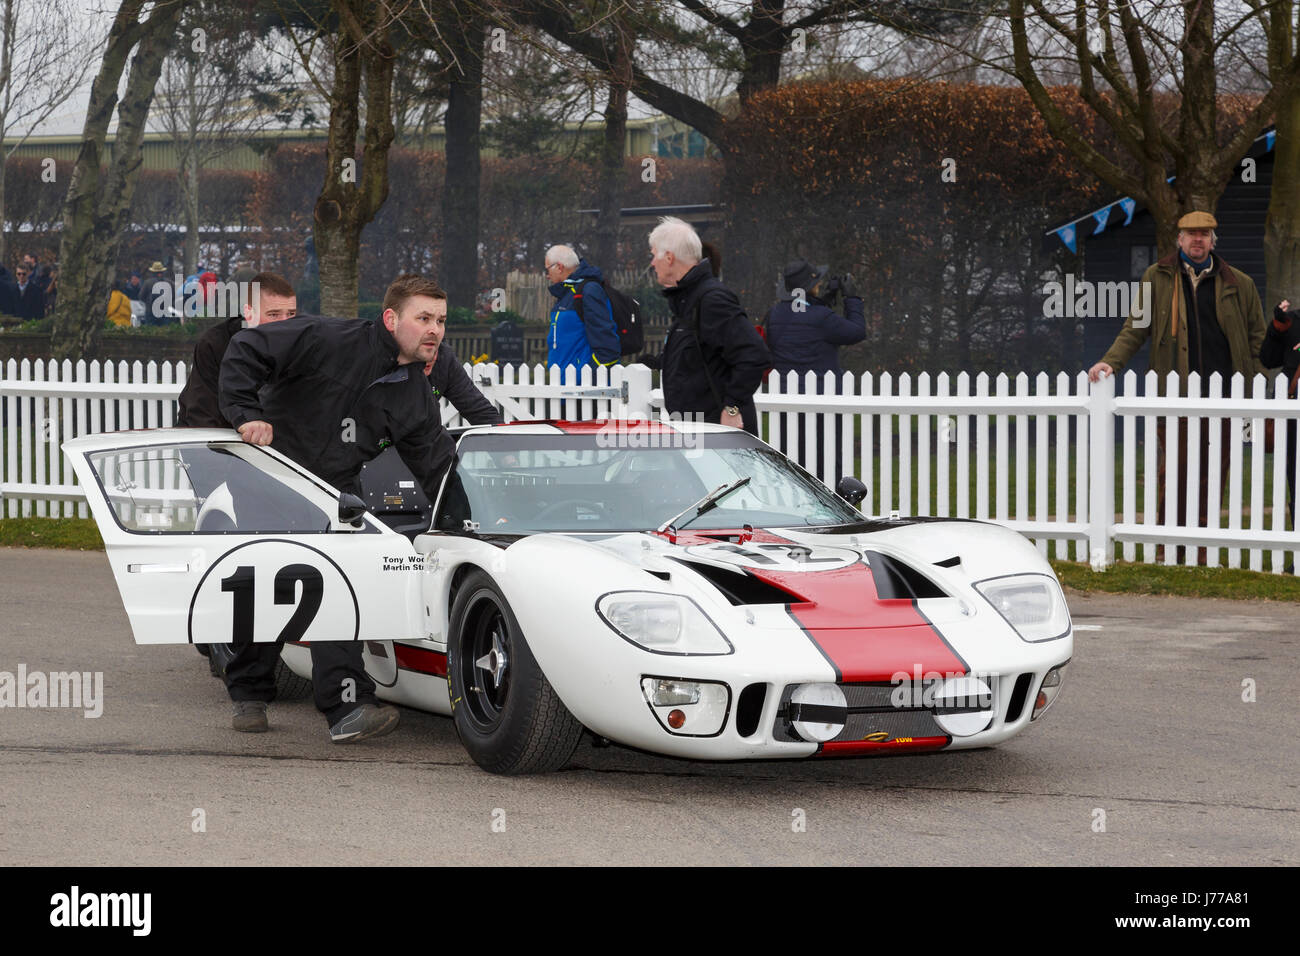 1965 Ford GT40 of Martin Stretton and Tony Wood in the paddock at Goodwood GRRC 74th Members Meeting, Sussex, UK. Stock Photo